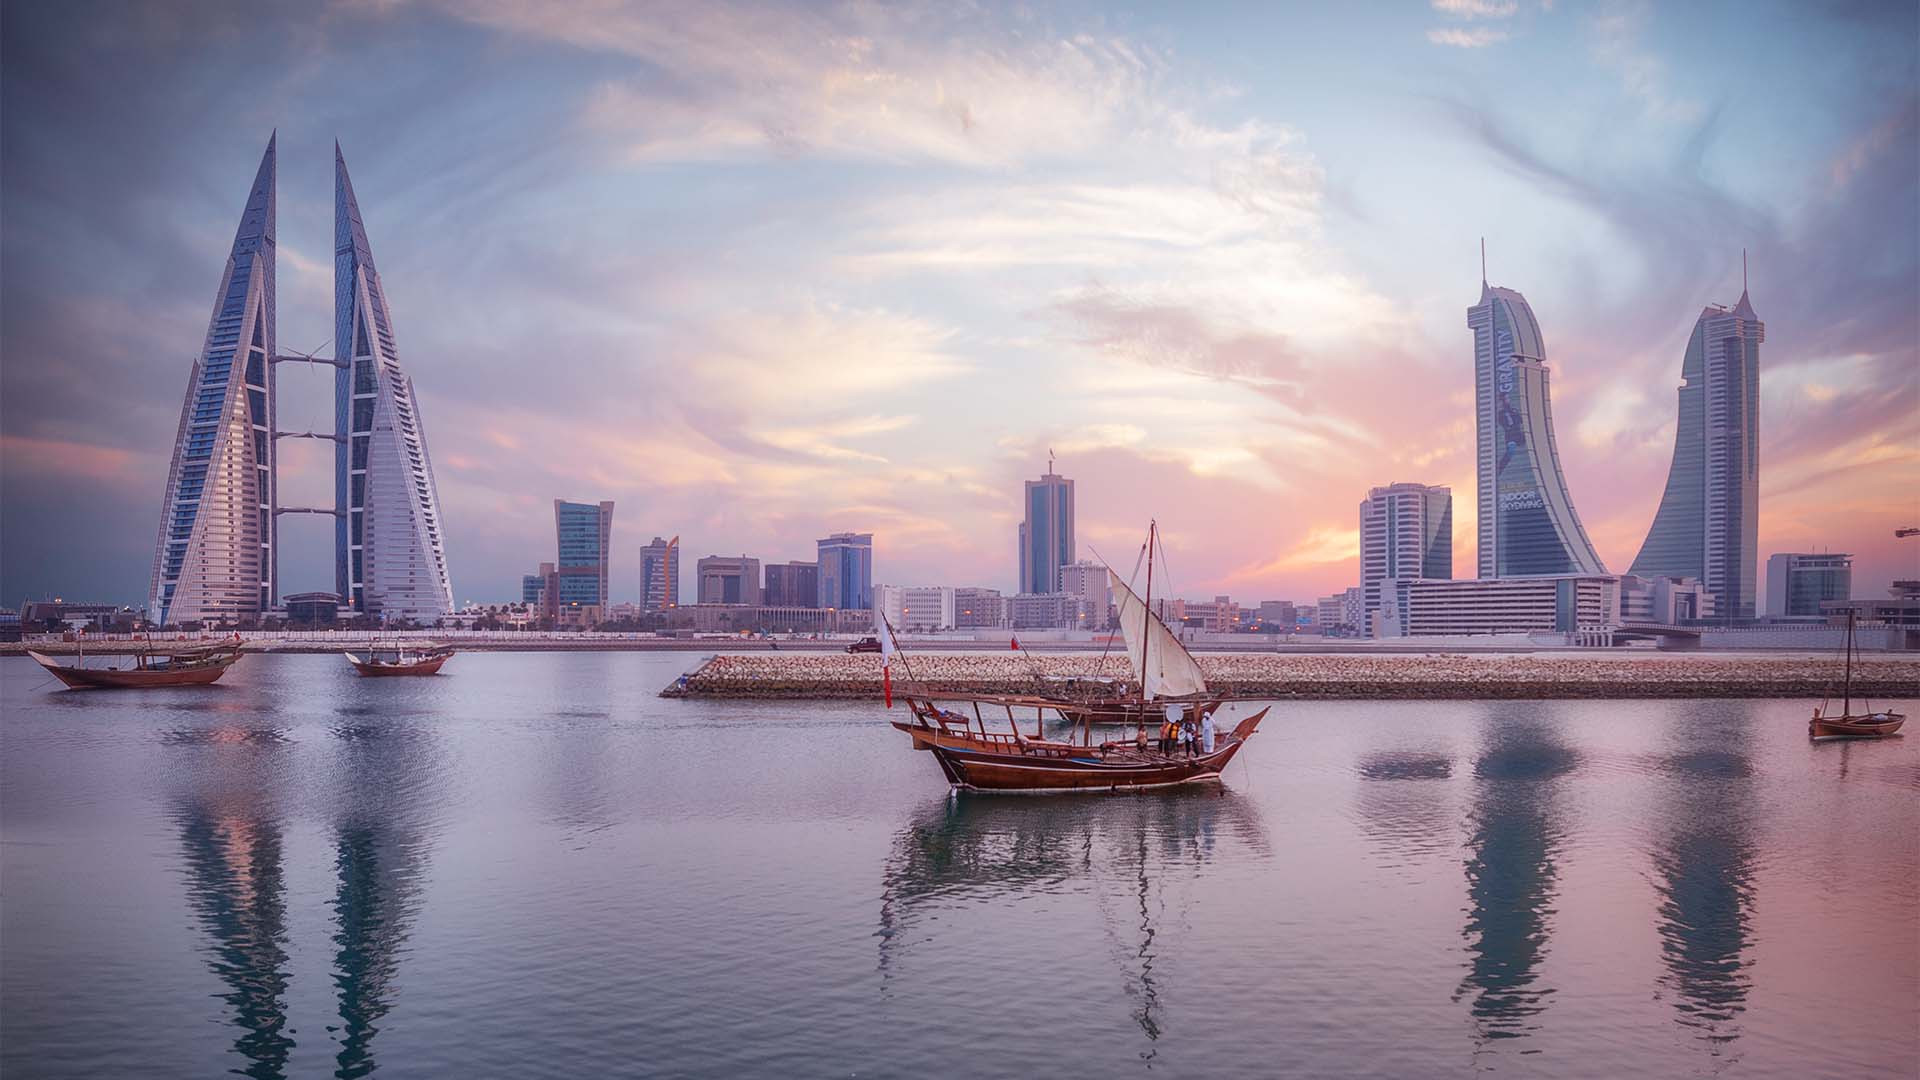 The Bahrain skyline